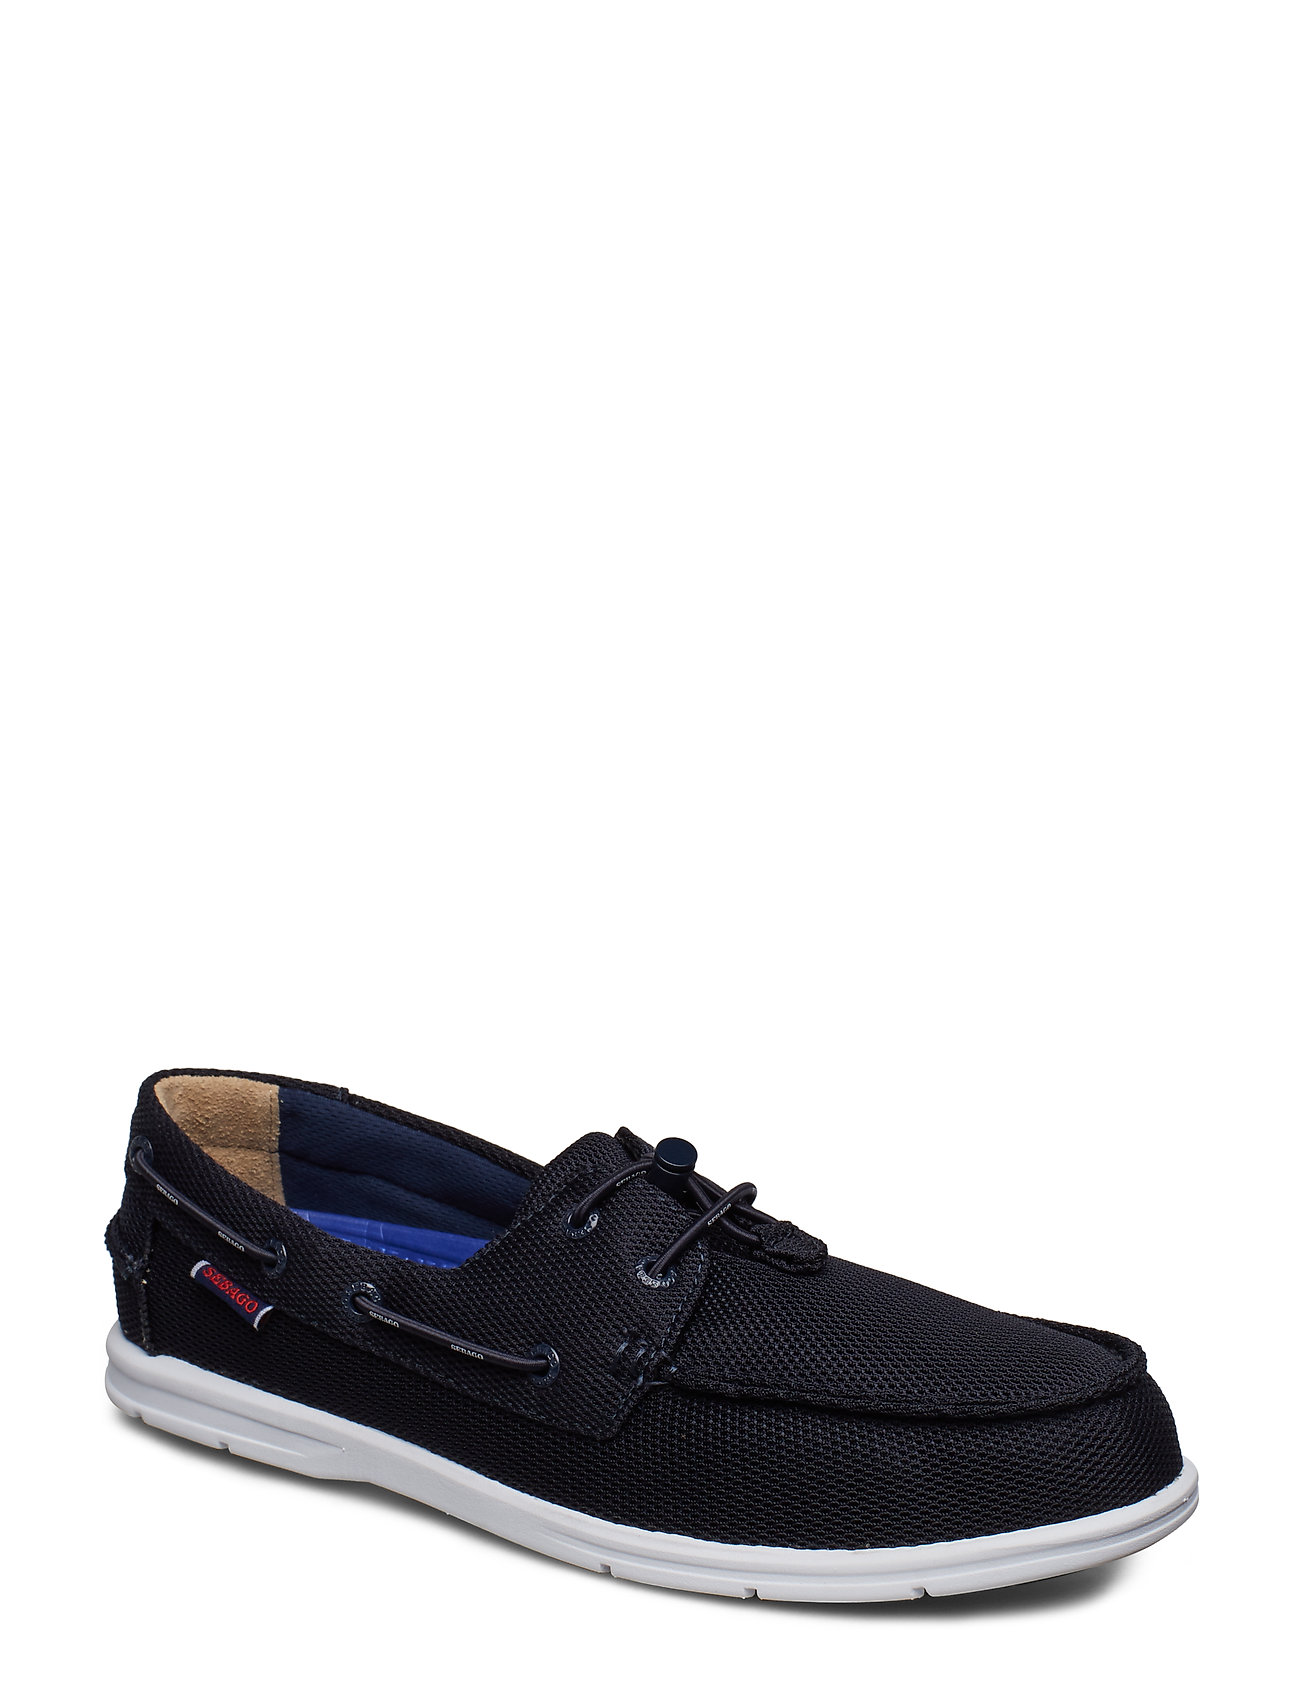 Sebago Naples Tech - BLUE NAVY